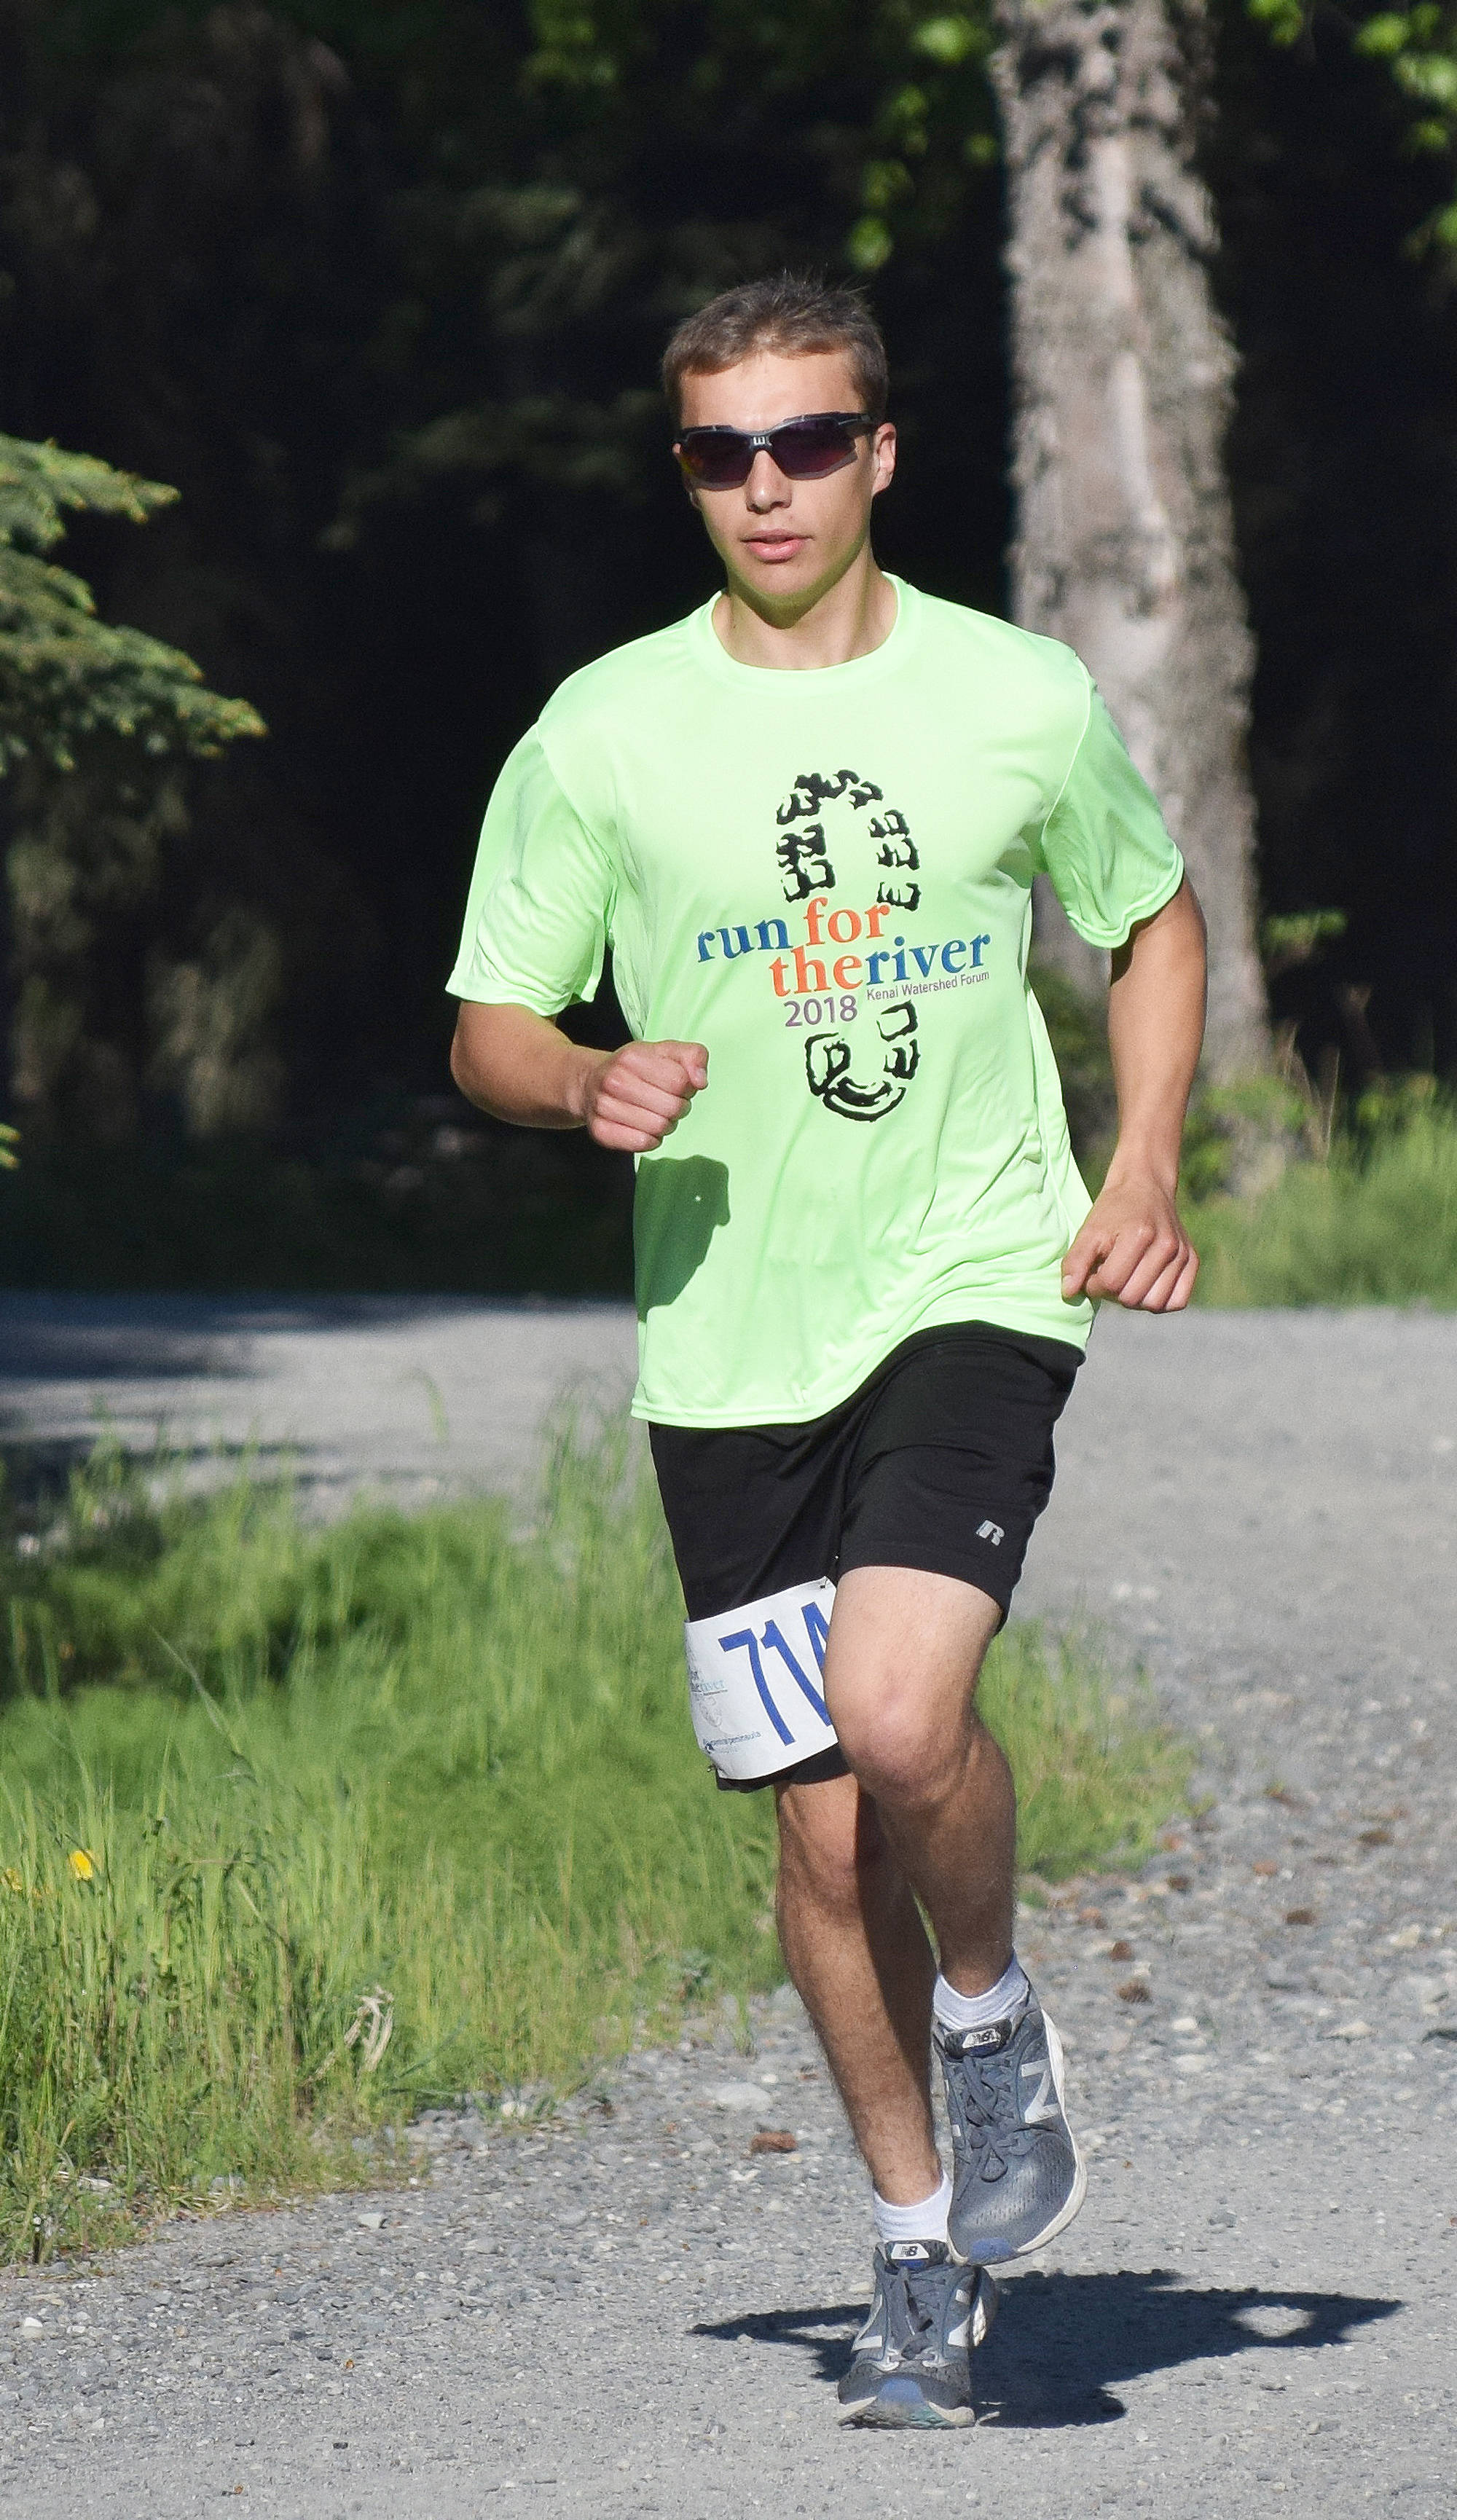 Bradley Walters takes an early lead Saturday morning at the Run for the River 5K/10-mile races near Soldotna Creek Park. (Photo by Joey Klecka/Peninsula Clarion)